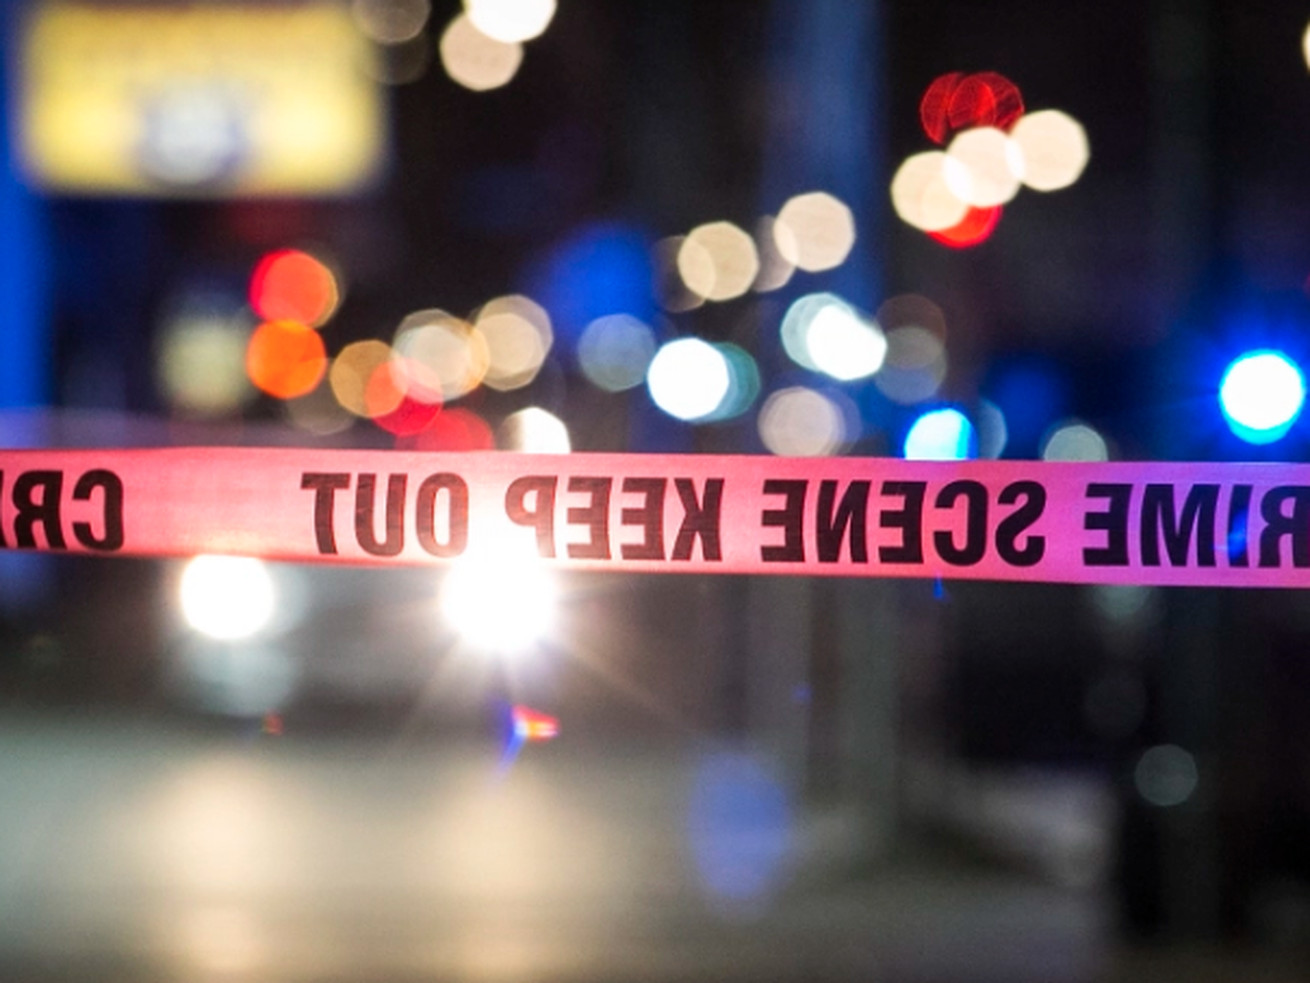 At least one person was killed in shootings since 5 p.m. April 23, 2021 in Chicago.